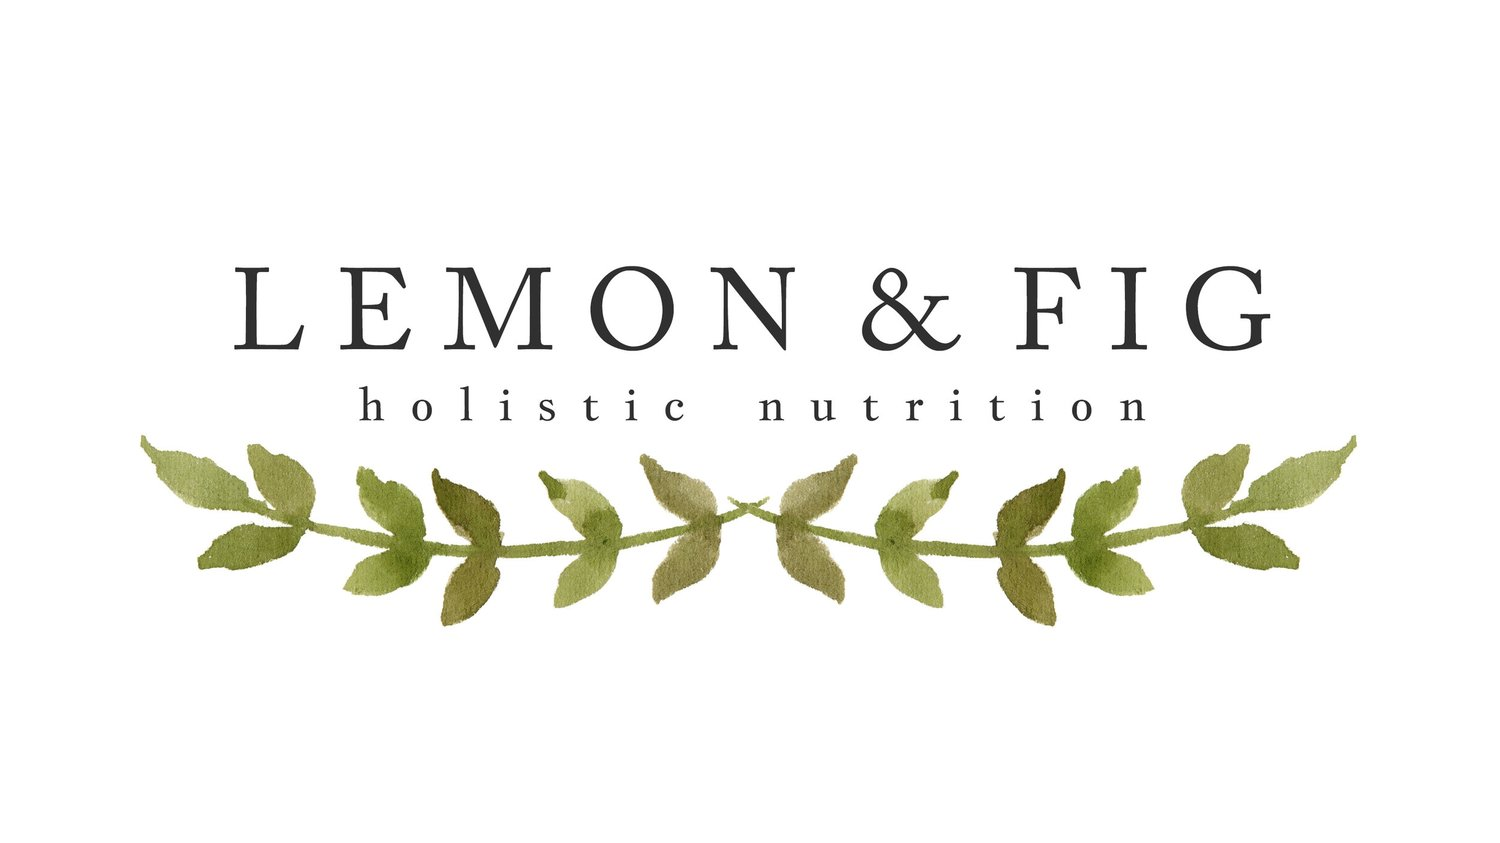 LEMON & FIG holistic nutrition